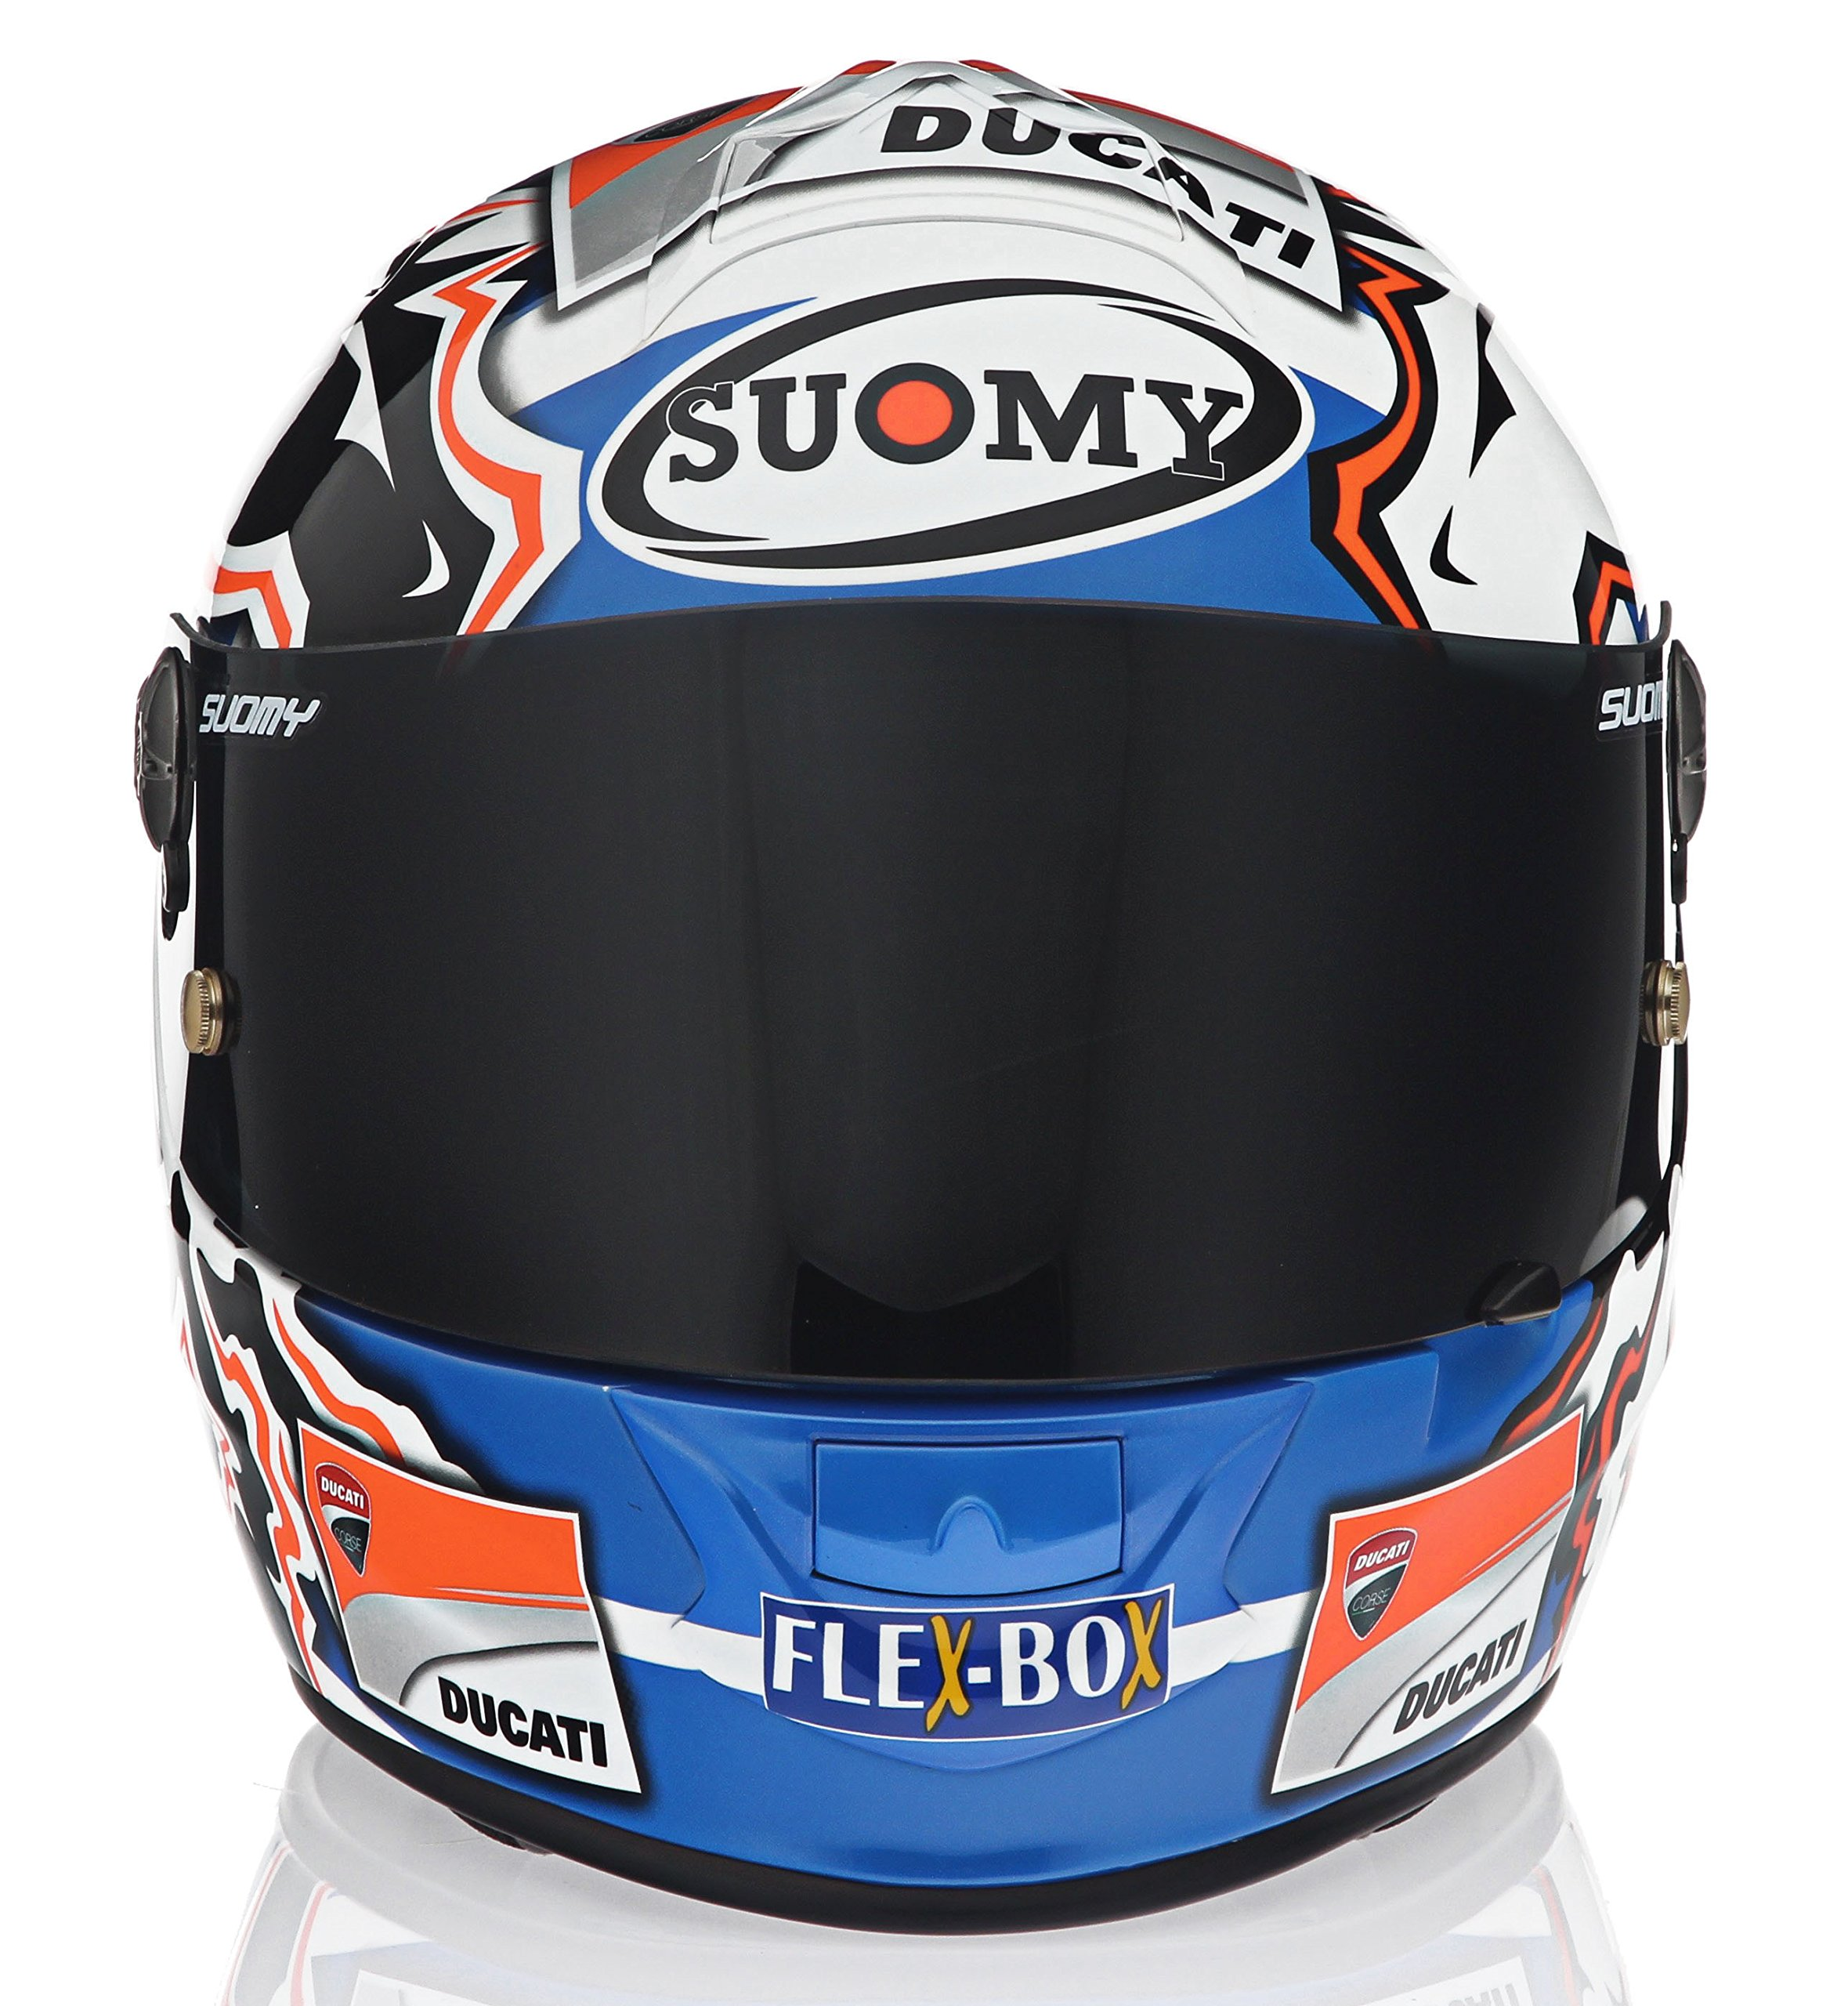 Suomy KTSR0033-MD SR Sport Helmet- DOVI GP DUC Medium by Suomy (Image #2)